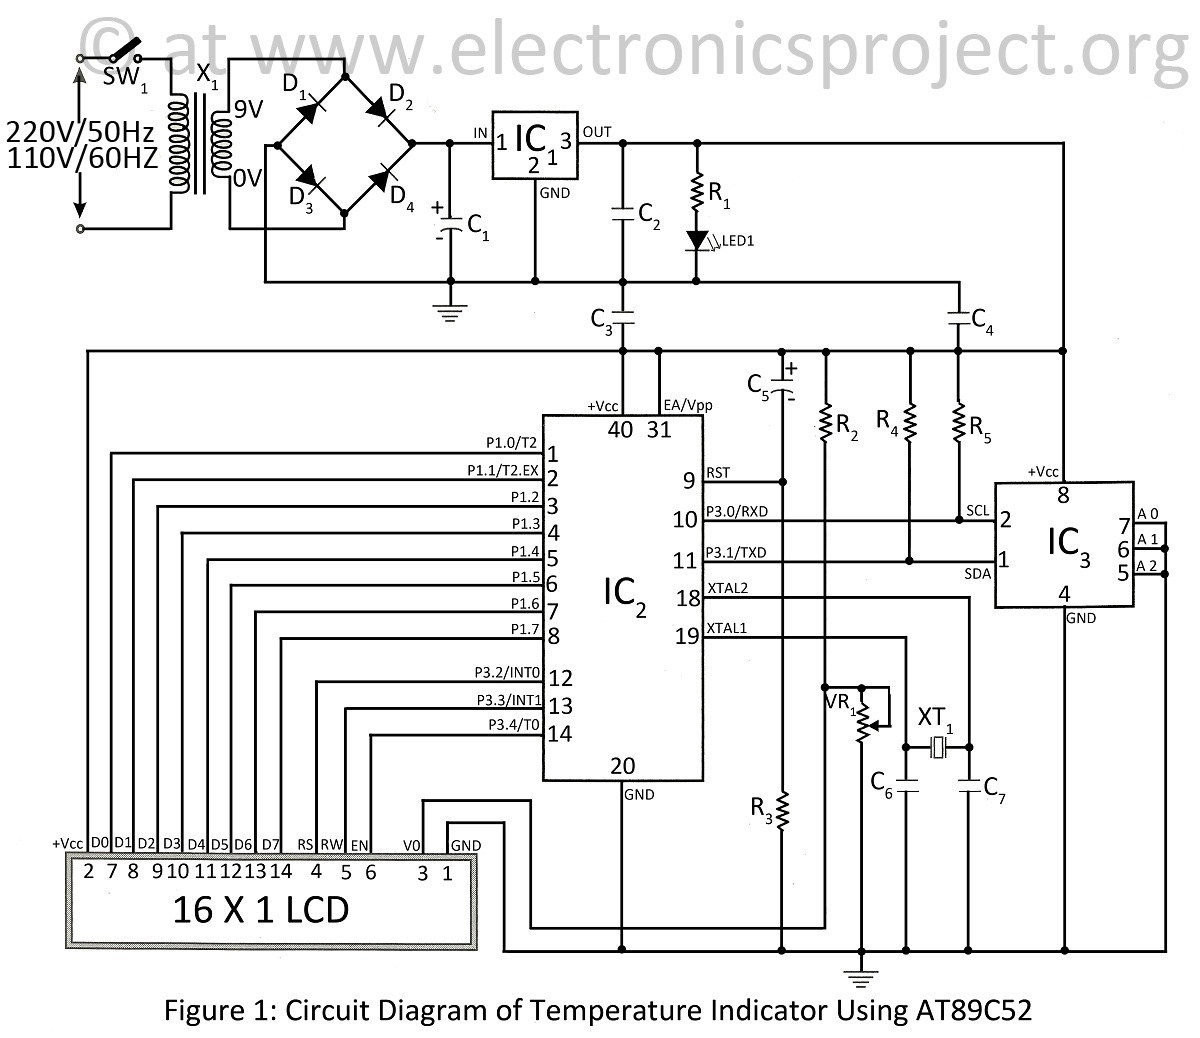 temperature controller wiring diagram Download-circuit diagram of temperature indicator using at89c52 17-a